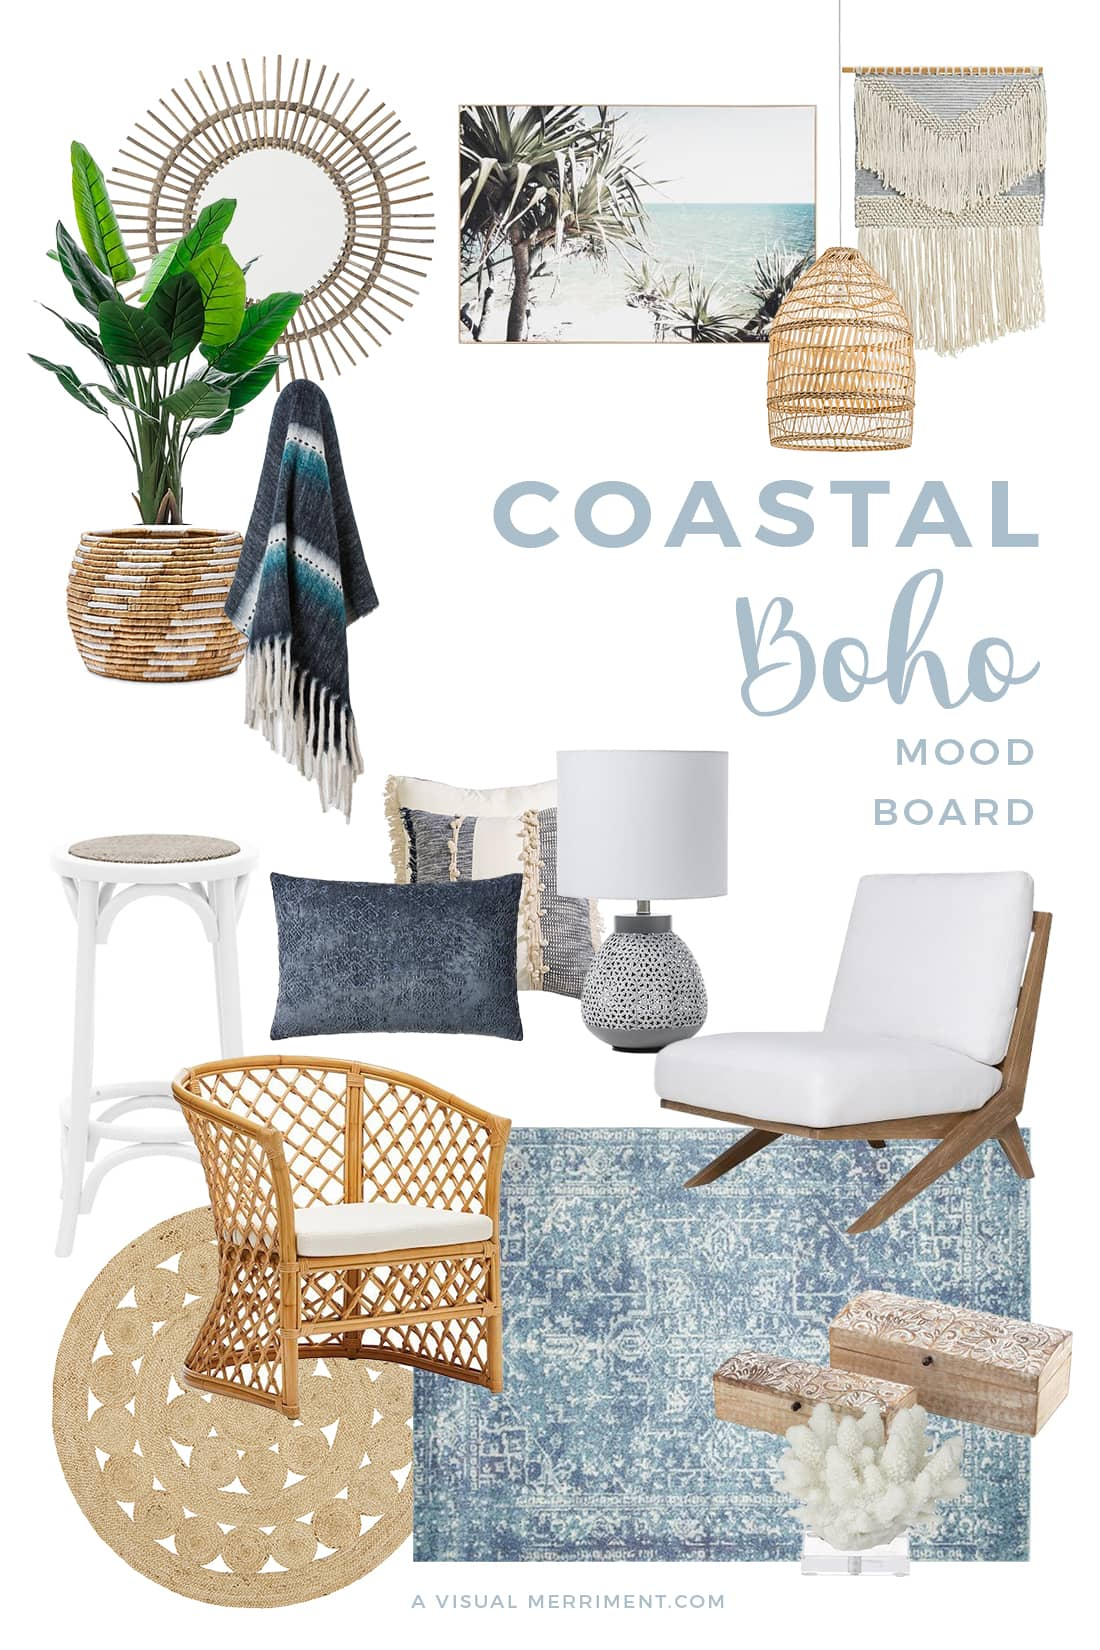 mood board of coastal boho style furniture and decor